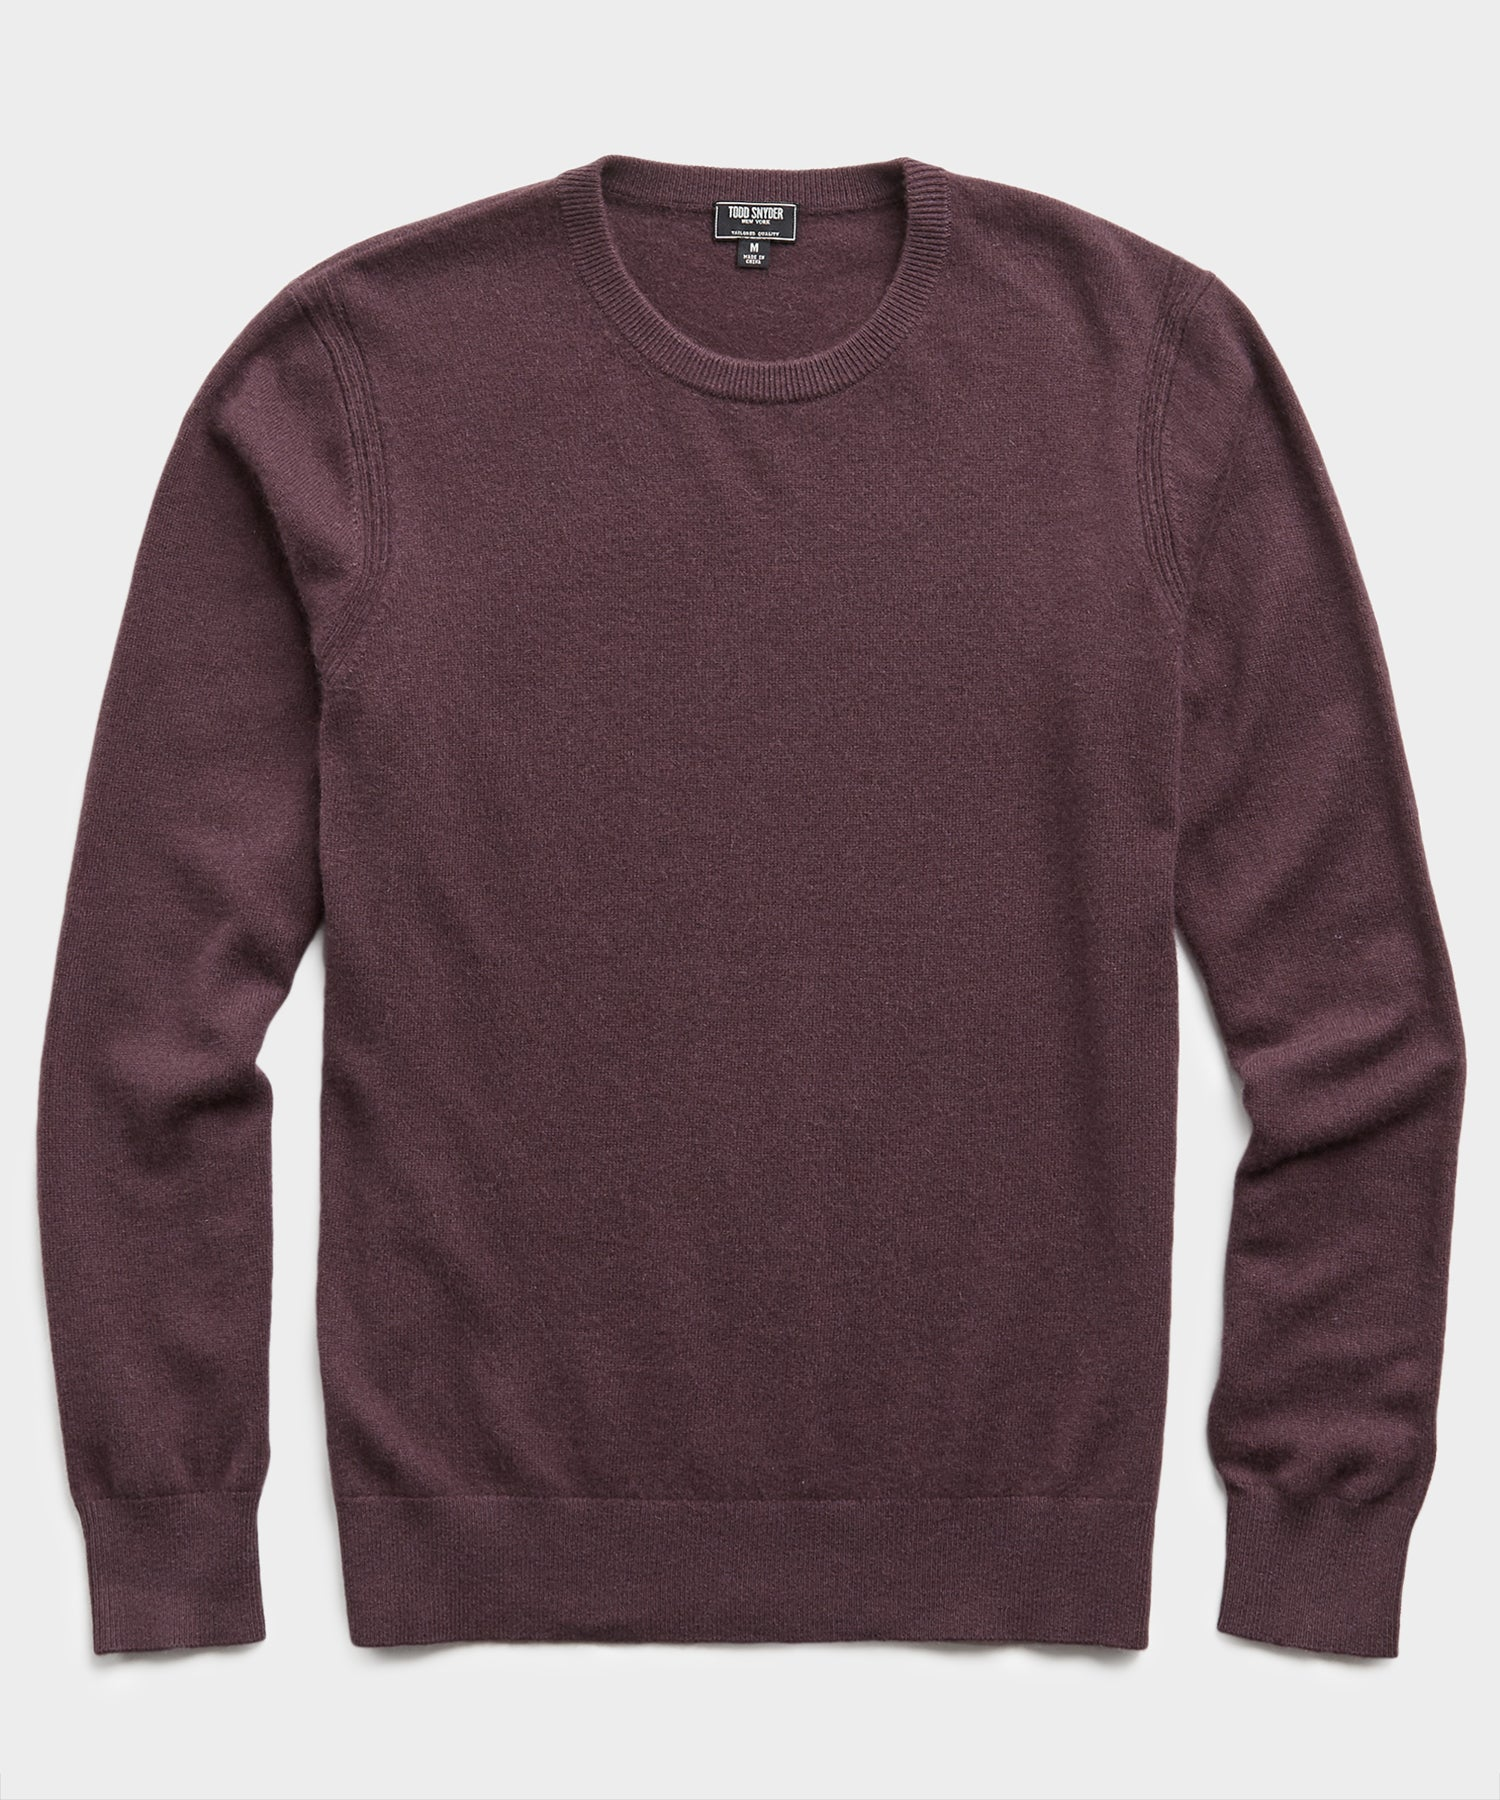 Cashmere Crewneck Sweater in Plum